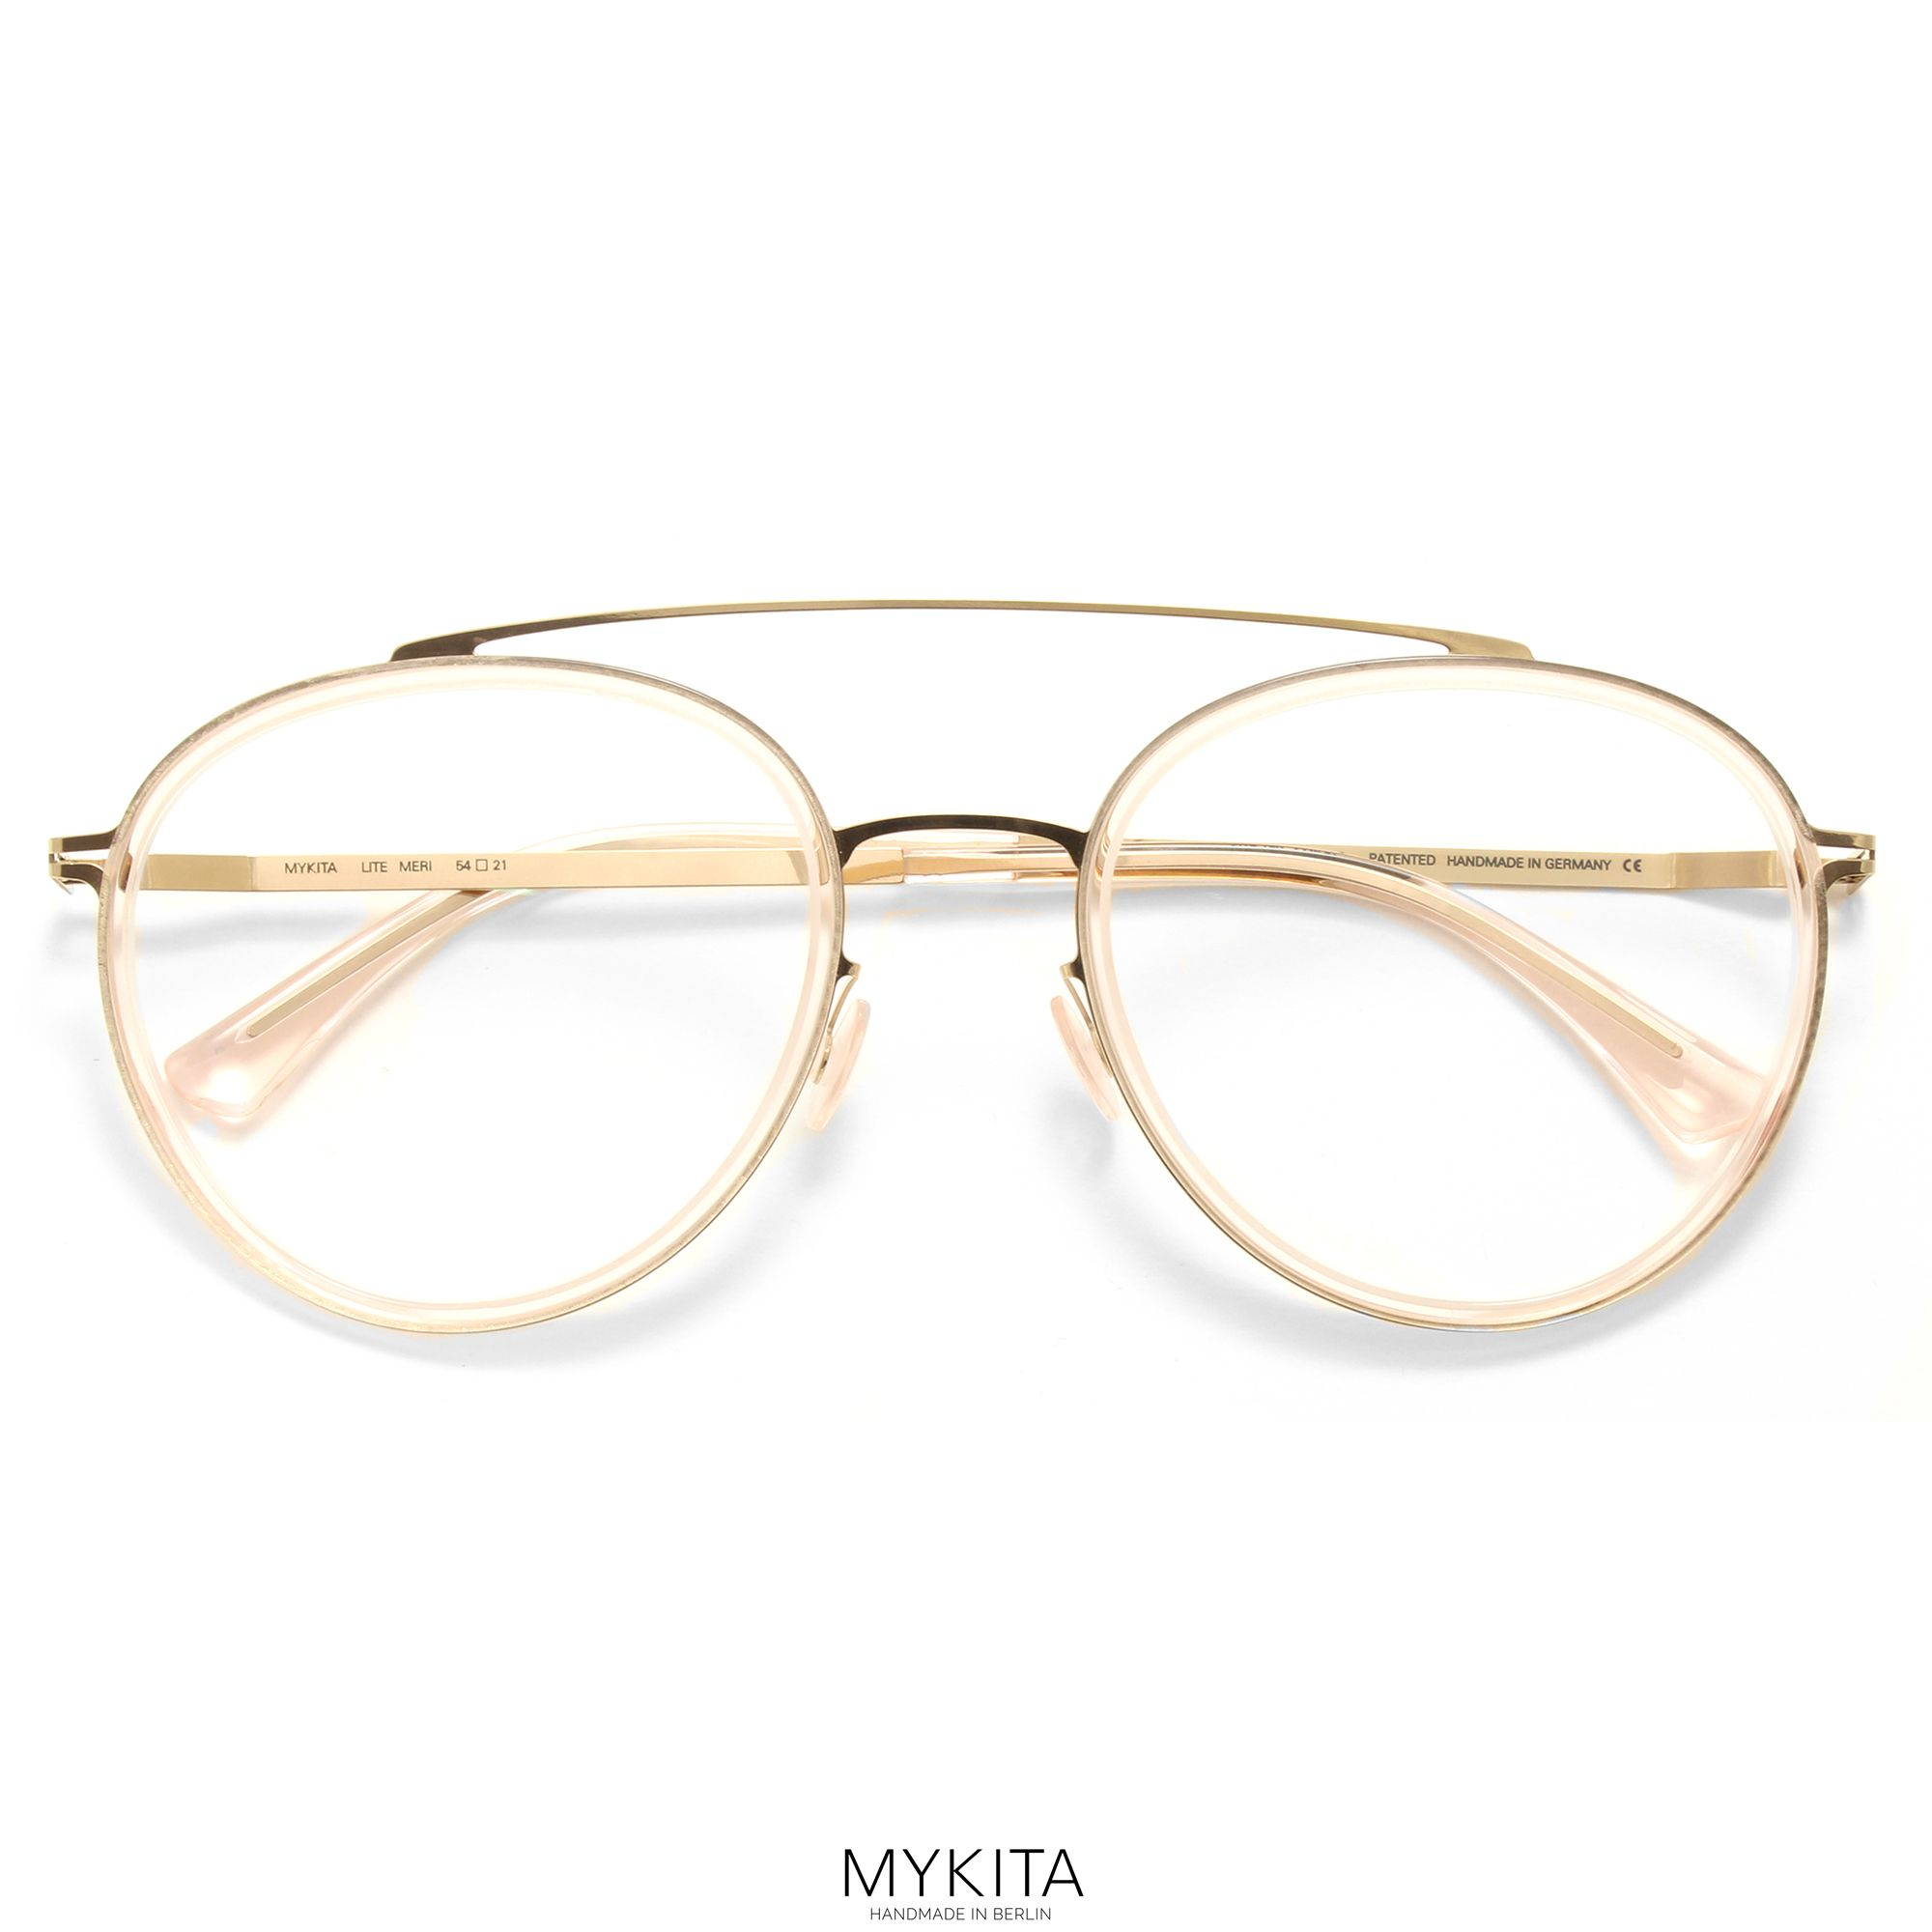 ee1f747afaf The MYKITA    MERI features a classic aviator shape for woman with a modern  construction